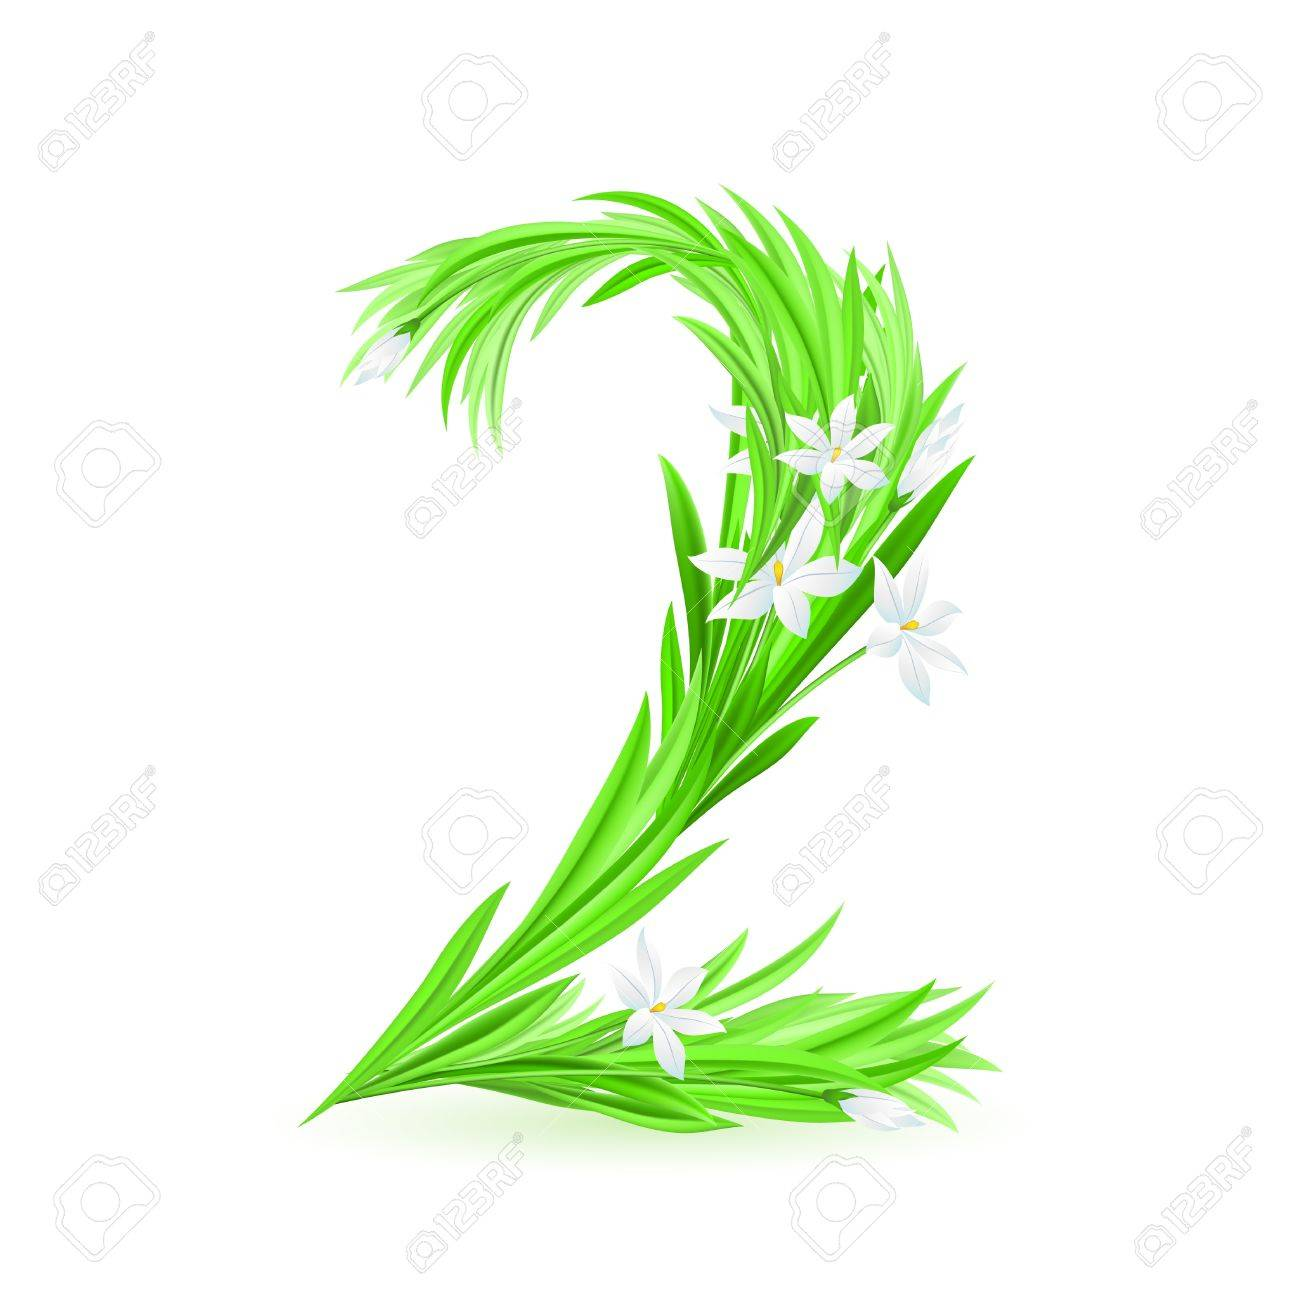 One alphabet symbol of spring flowers  - digit two. Illustration on white background Stock Vector - 9262078